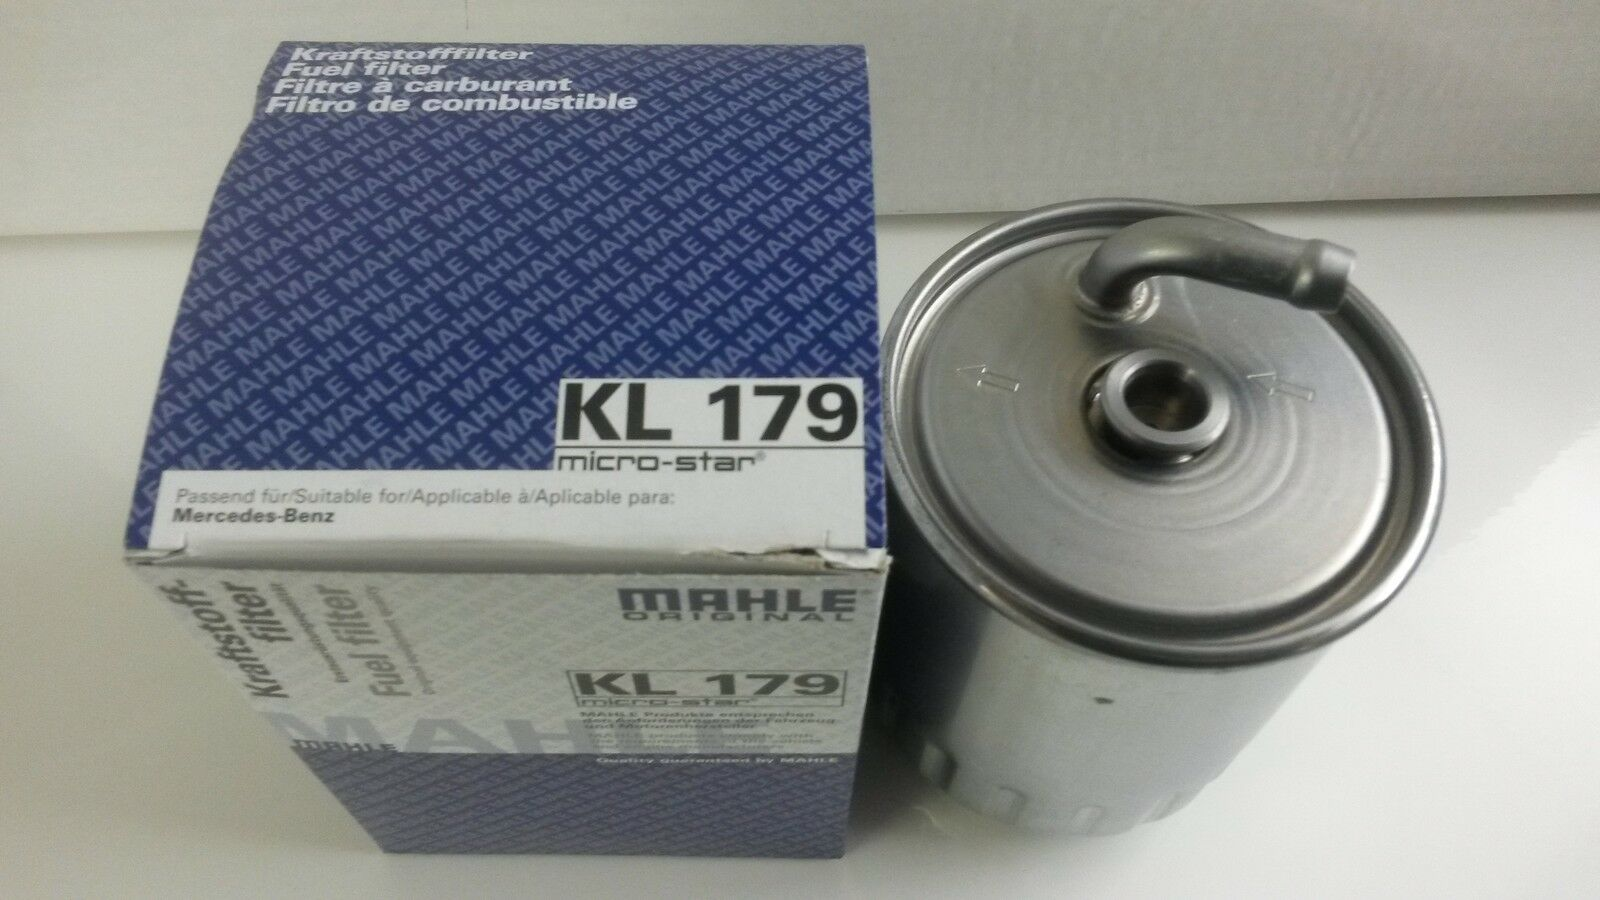 Mercedes Ml270 Cdi Diesel Fuel Filter Genuine Mahle 2000 2005 E320 1 Of 1free Shipping